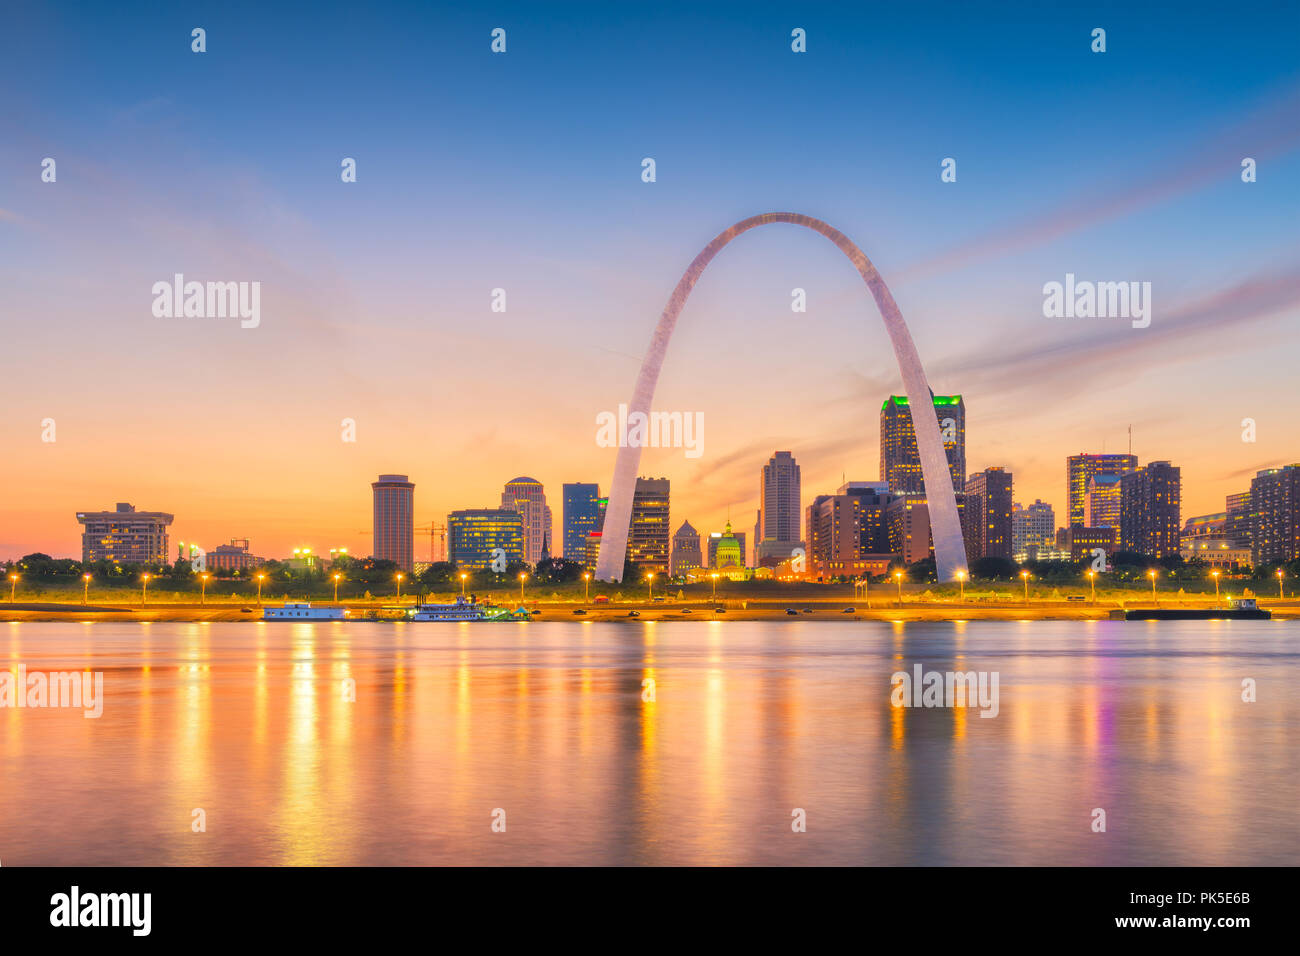 St. Louis, Missouri, USA downtown cityscape with the arch and courthouse at dusk. - Stock Image